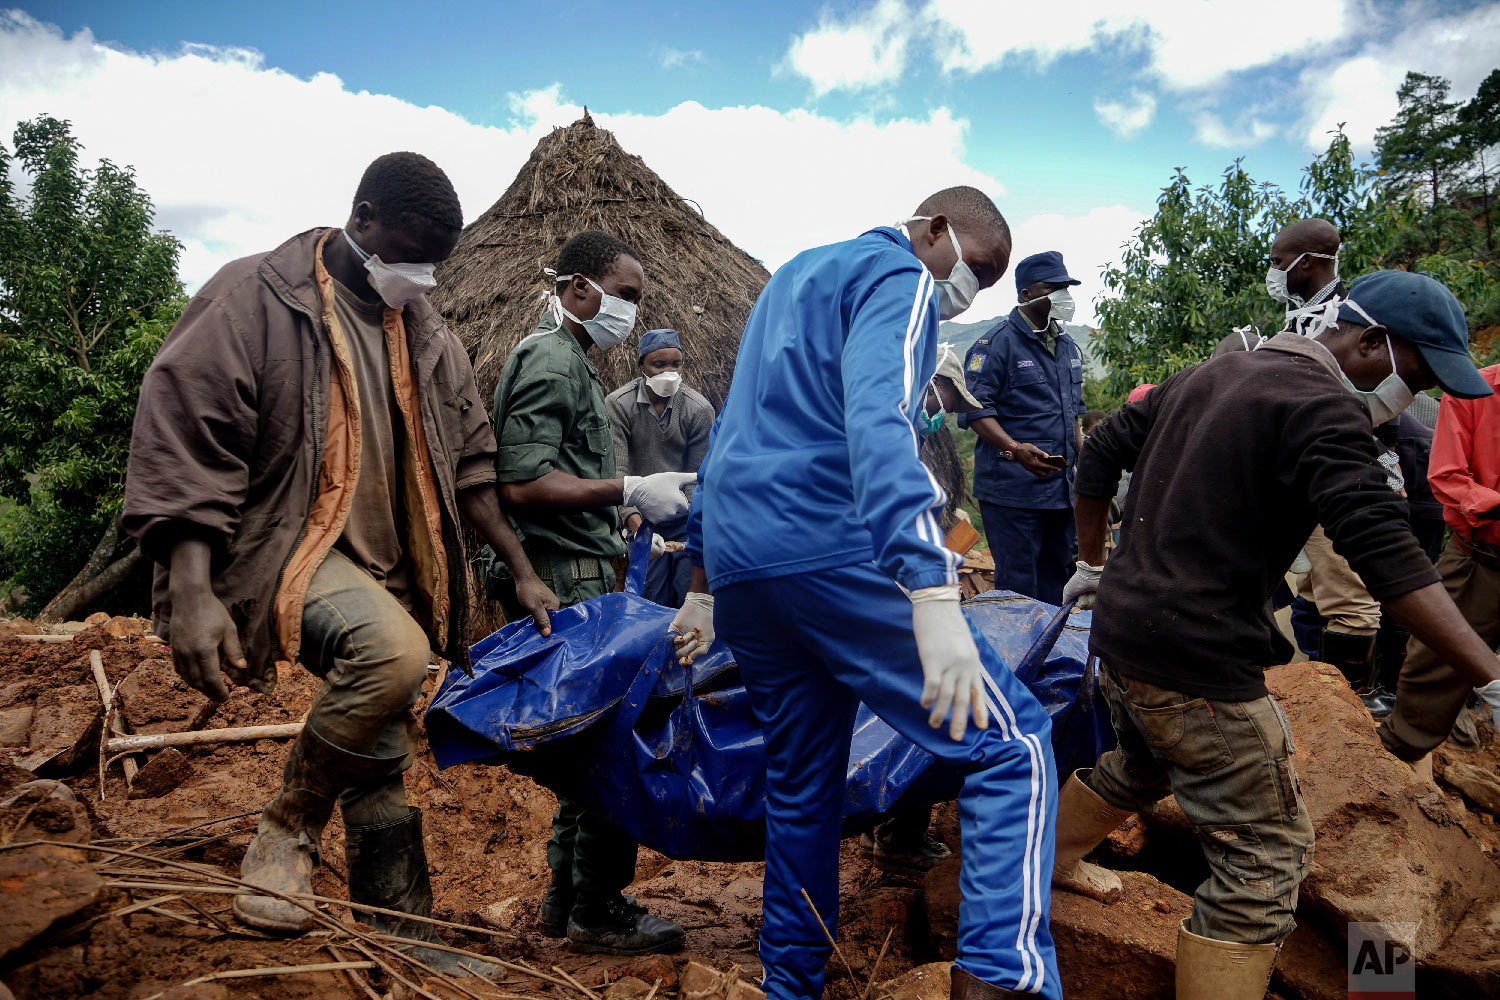 Men retrieve the body of 17-year-old Agreement Munanga, who died last Friday after Cyclone Idai caused mudslides in Chimanimani, Zimbabwe, Friday, March 22, 2019. (AP Photo/KB Mpofu)